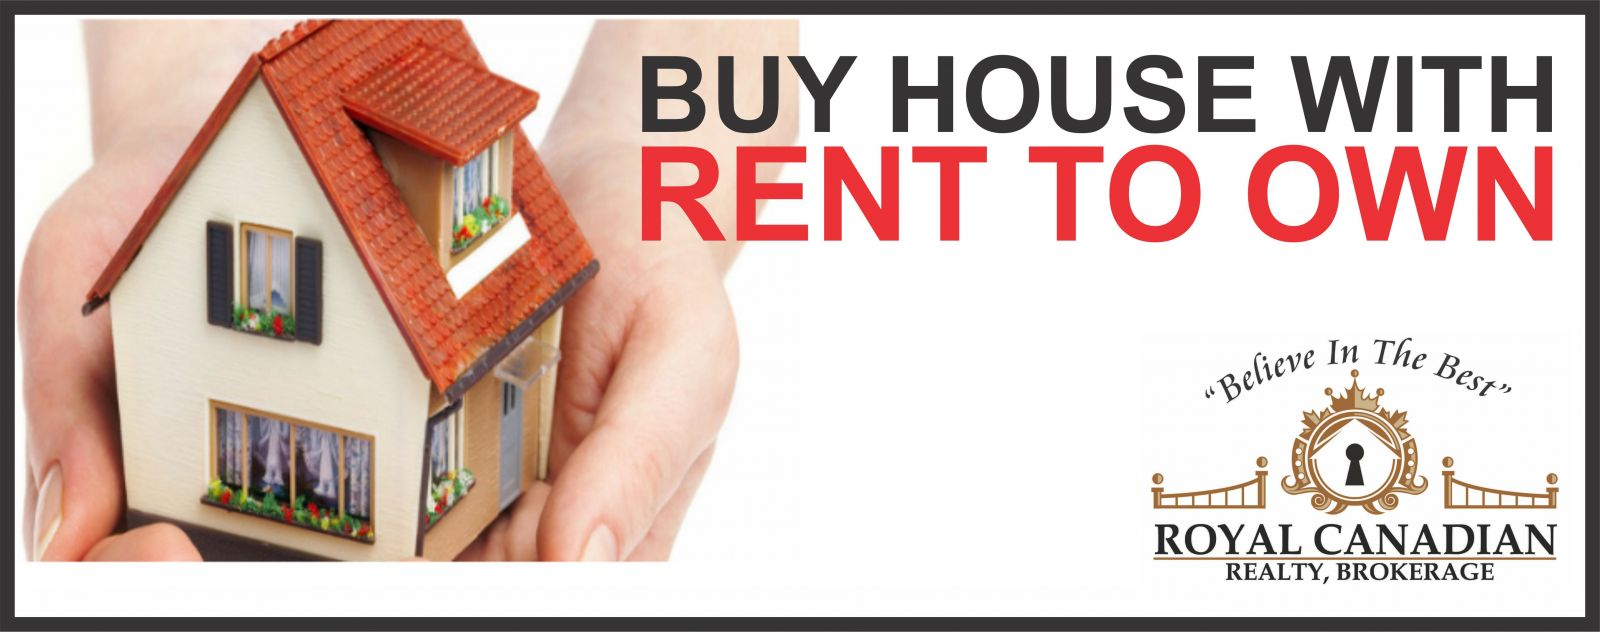 Buy house with rent to own, Royal Canadian Realty, Brokerage, GTArealstar